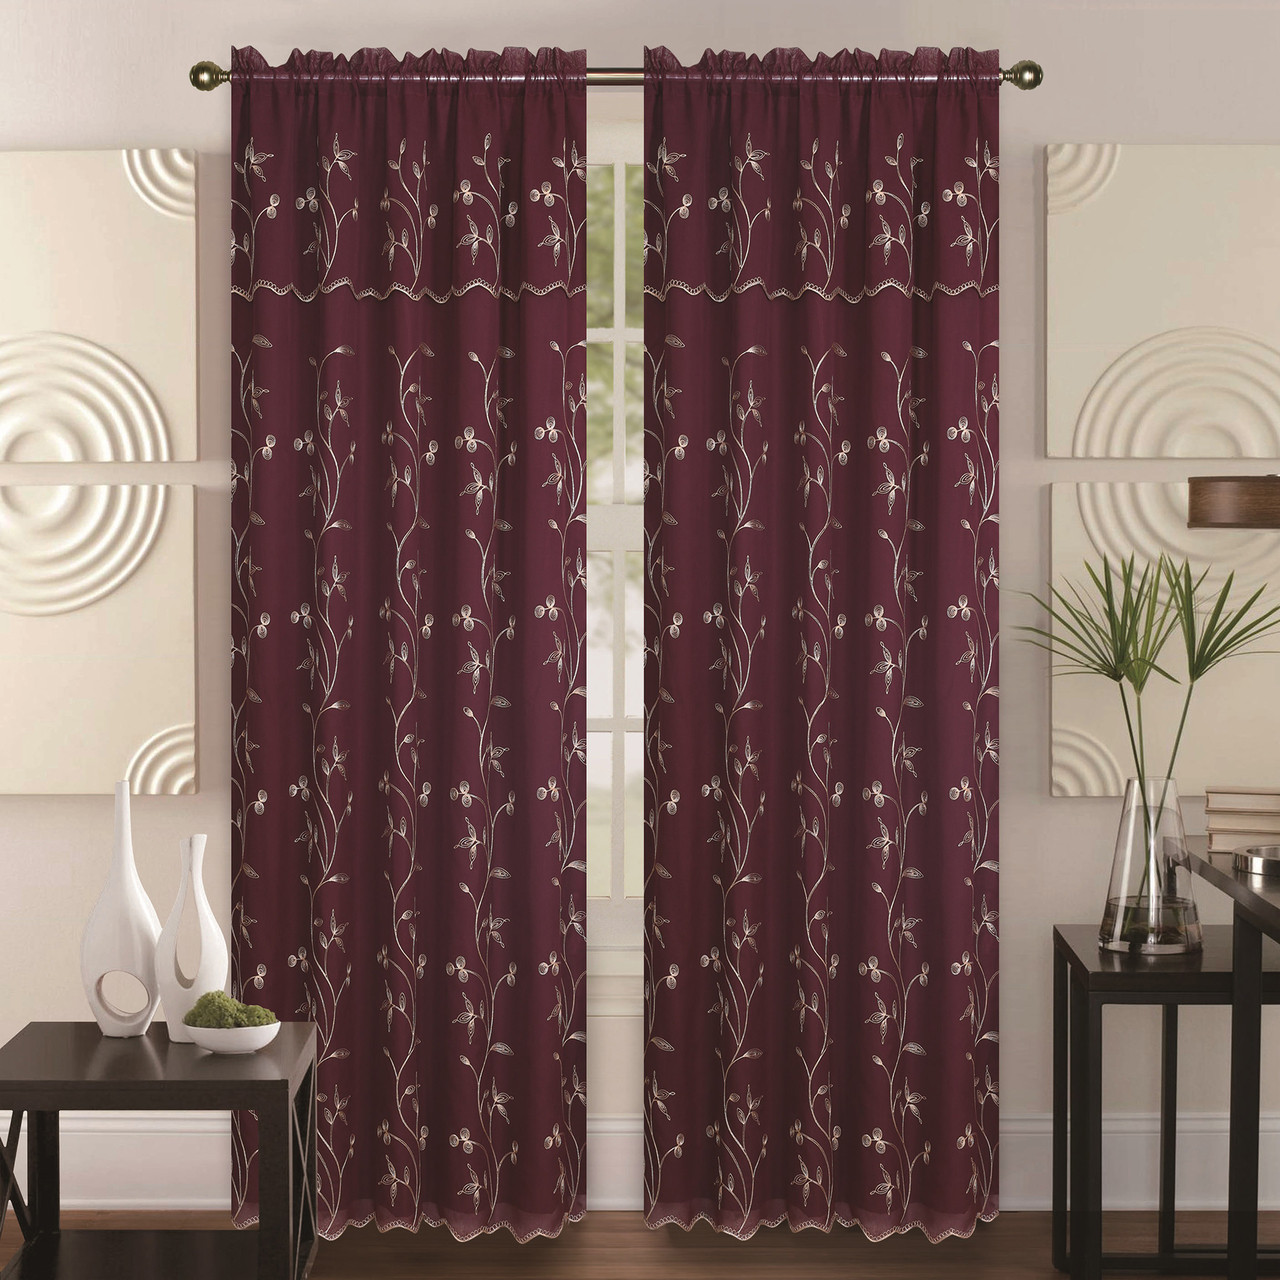 Curtain For Double Window Double Layer Embroidery Floral Vine Sheer Front Fauz Silk Back Rod Pocket Decorative Curtain Panel 55x84 Inch With 18 Inch Valance Alma Single